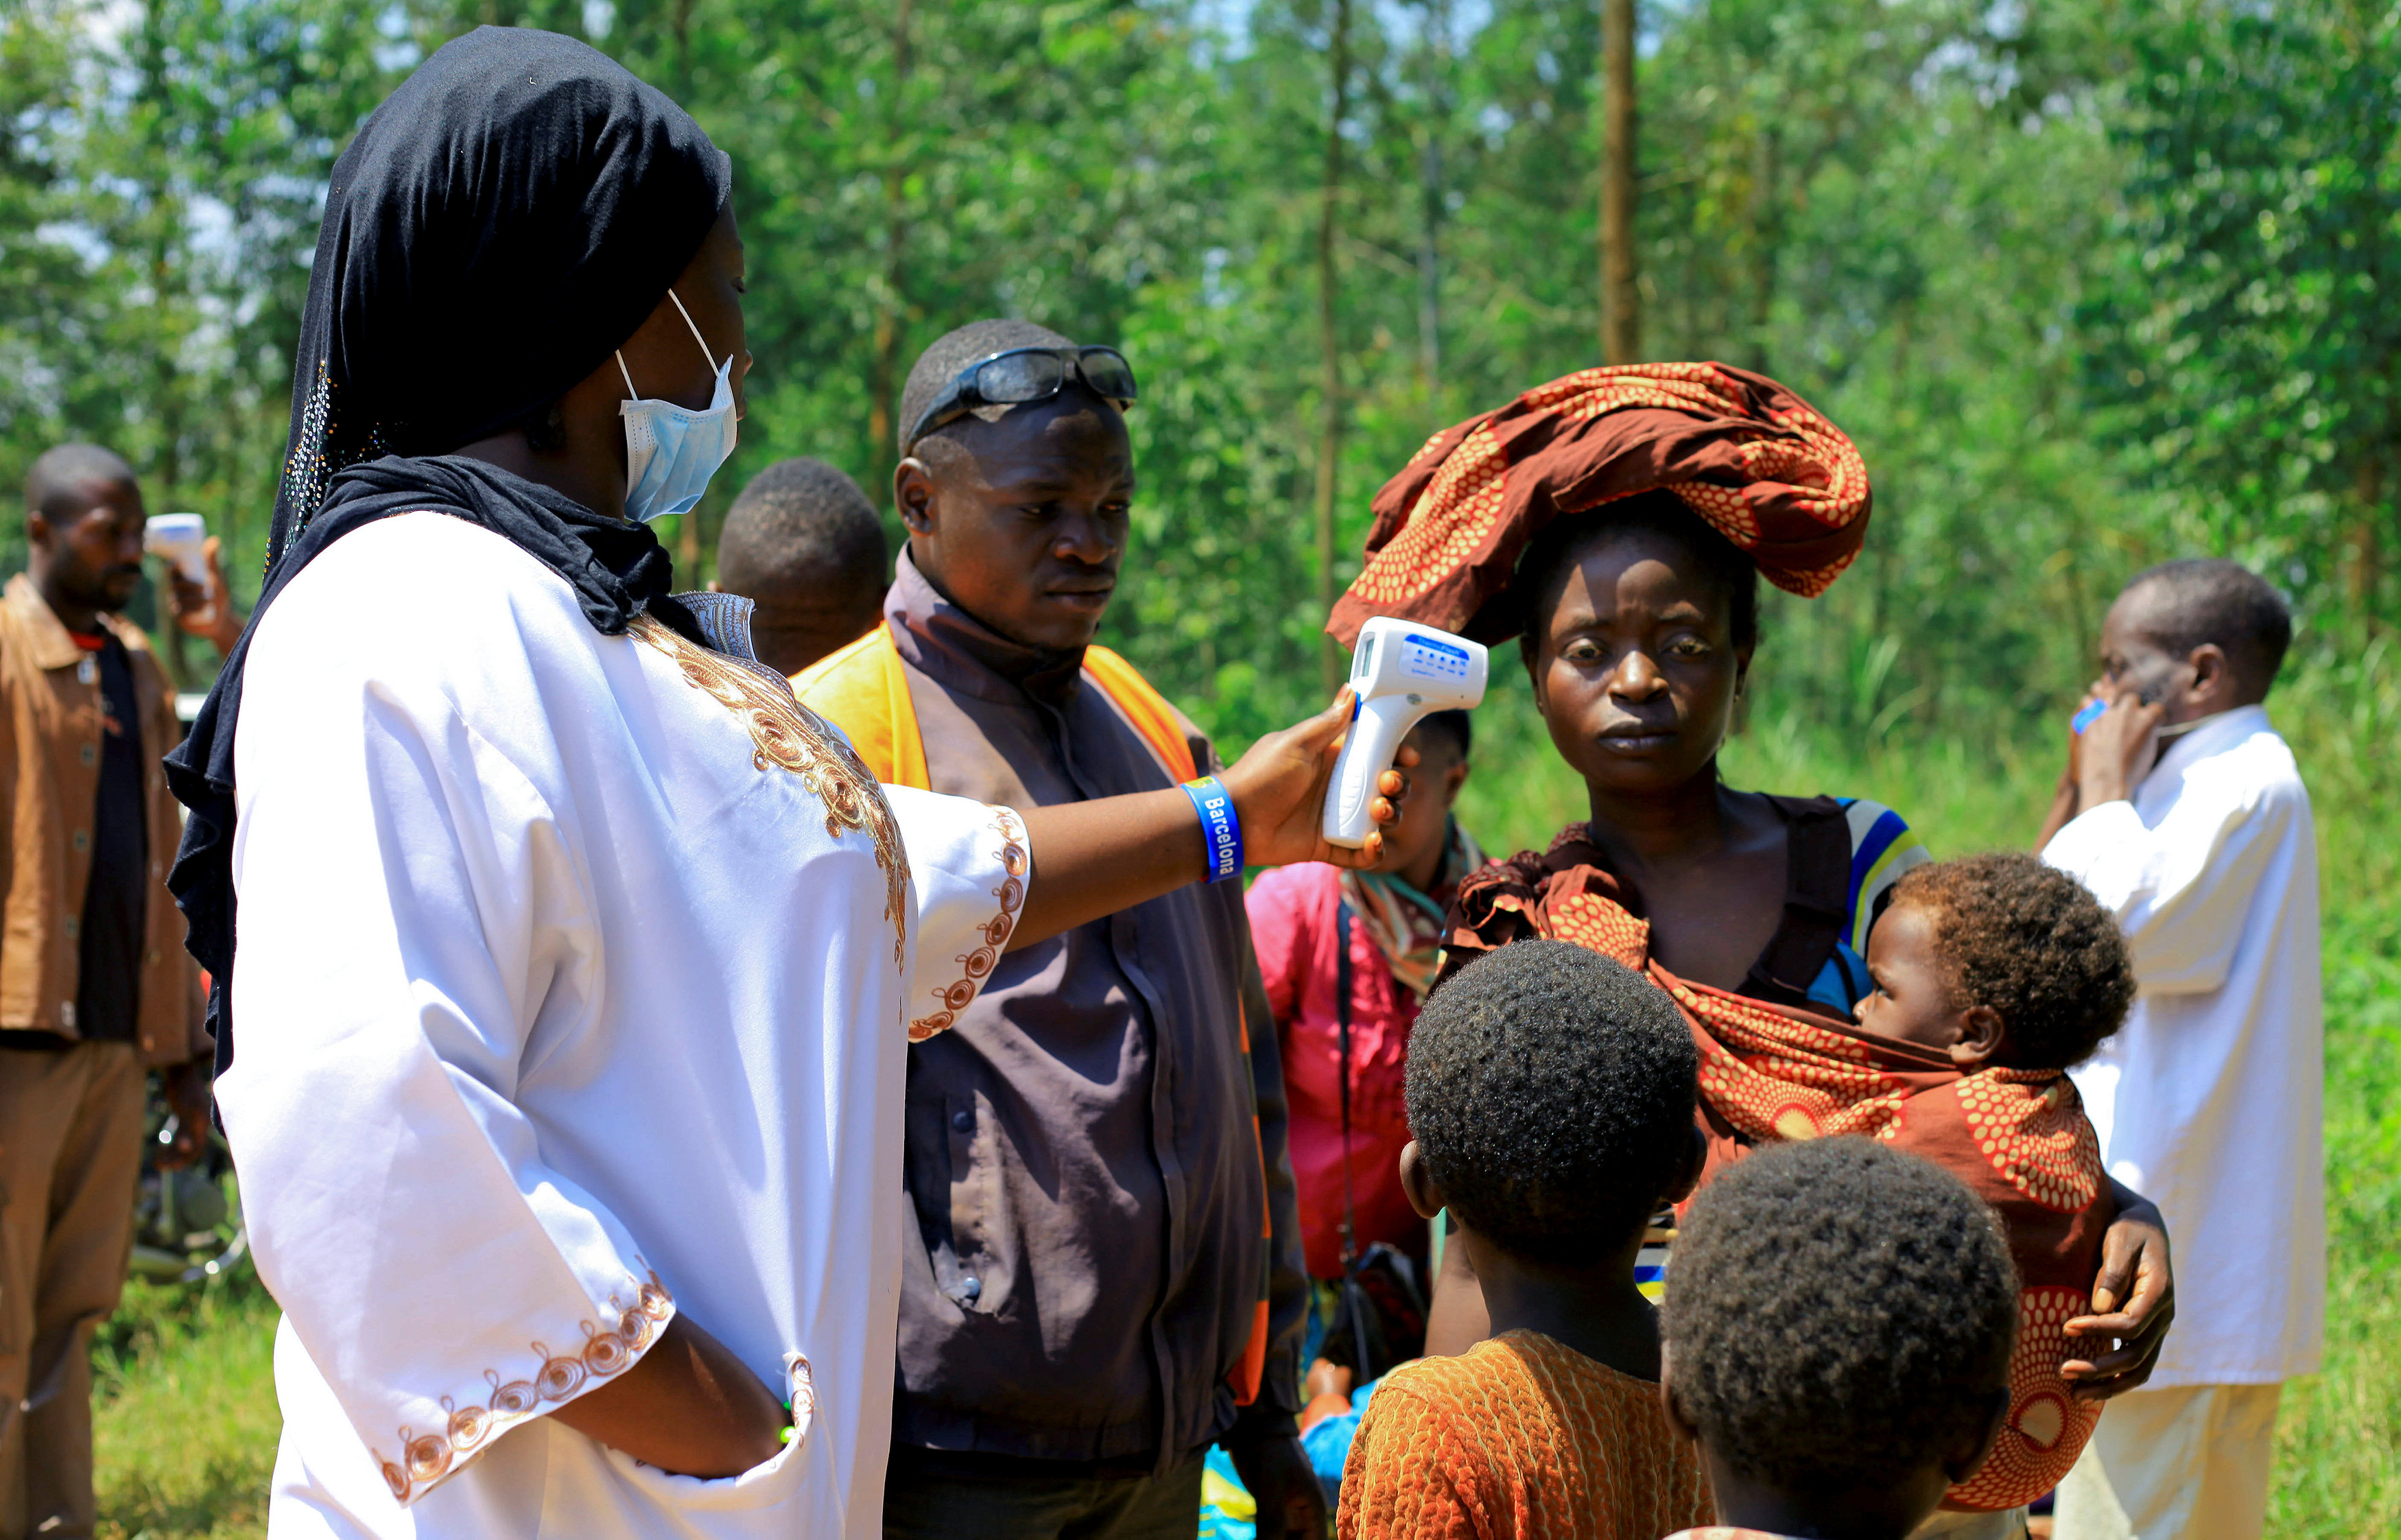 A Congolese health worker checks the temperature of a woman before the launch of vaccination campaign against the deadly Ebola virus near Mangina village, near the town of Beni, in North Kivu province of the Democratic Republic of Congo, August 8, 2018. REUTERS/Samuel Mambo